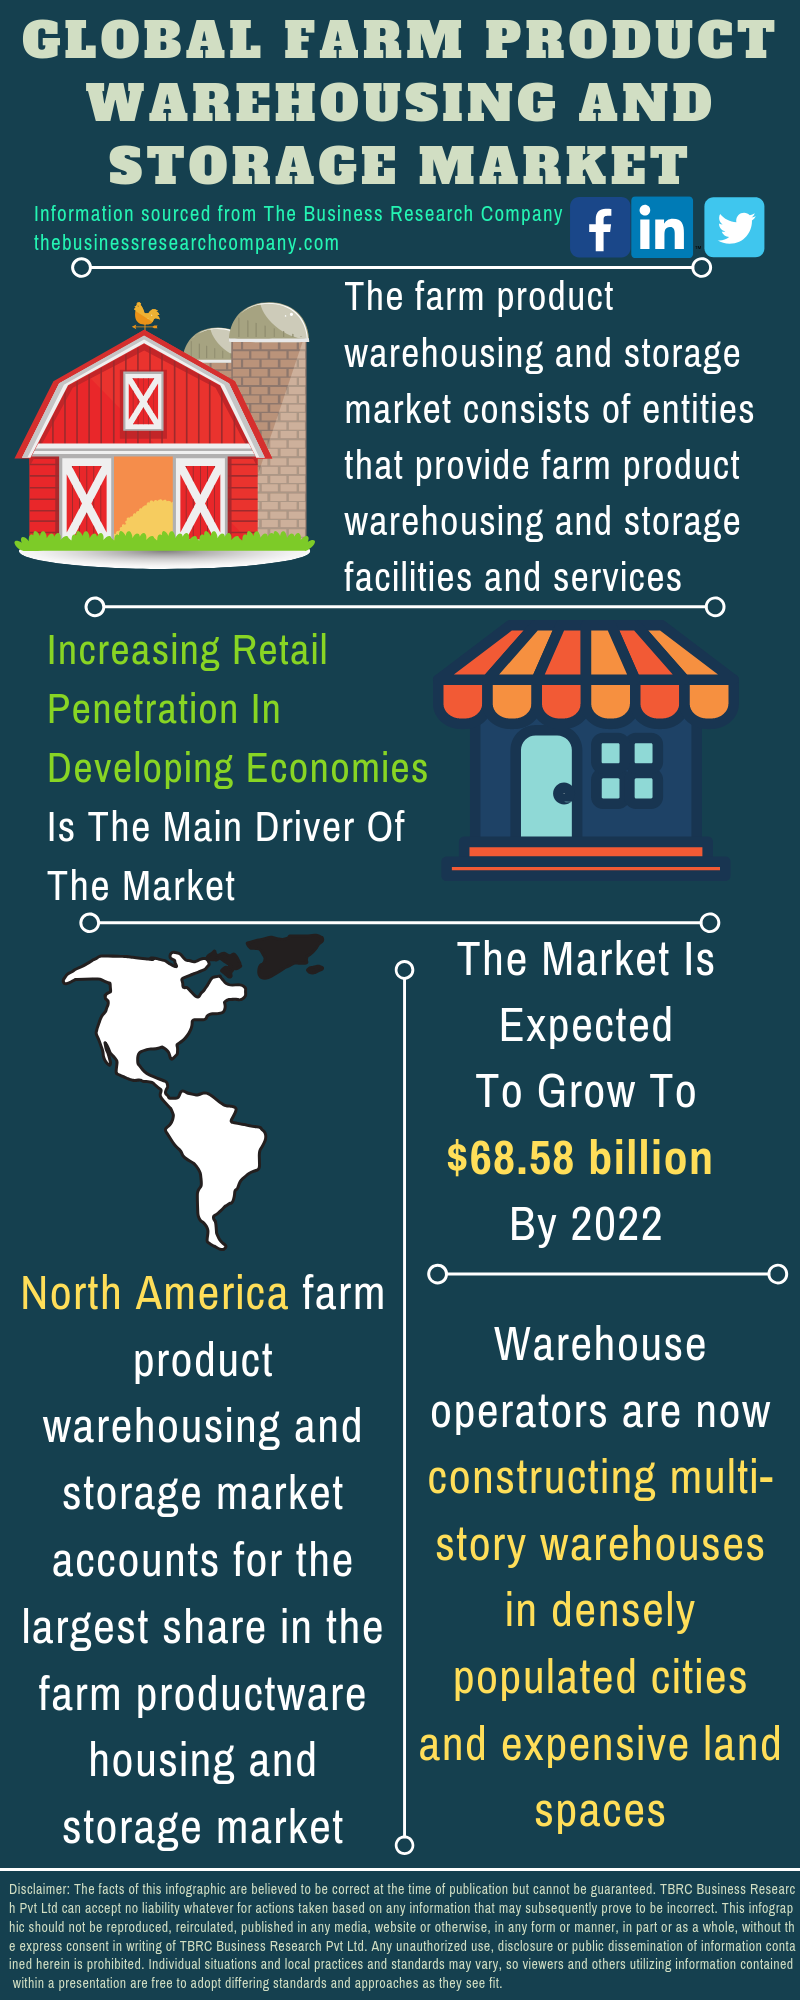 Farm Product Warehousing and Storage Market